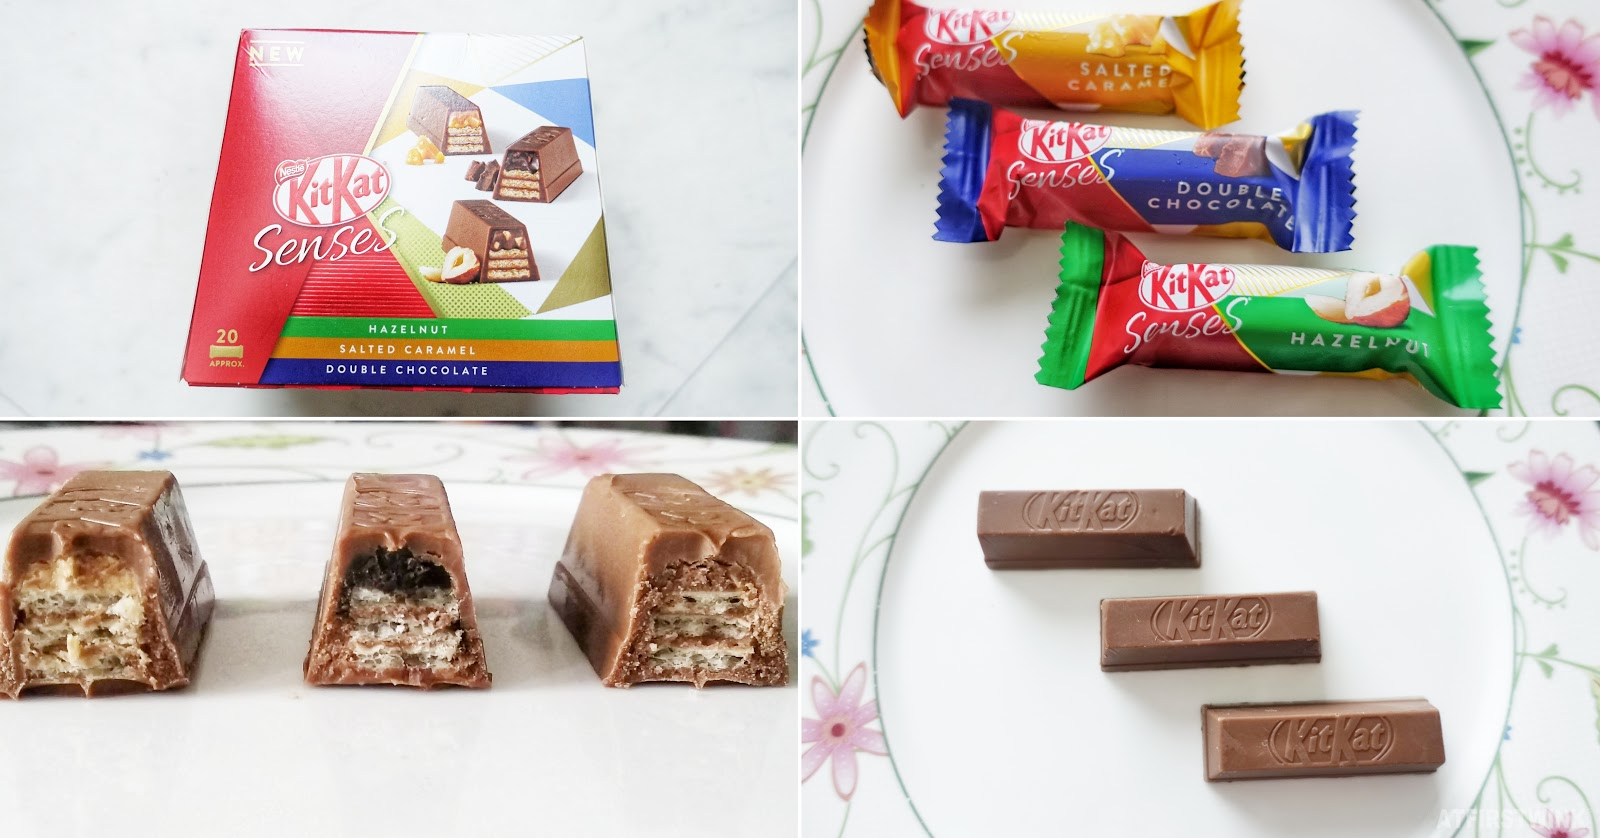 Kitkat senses double chocolate salted caramel hazelnut